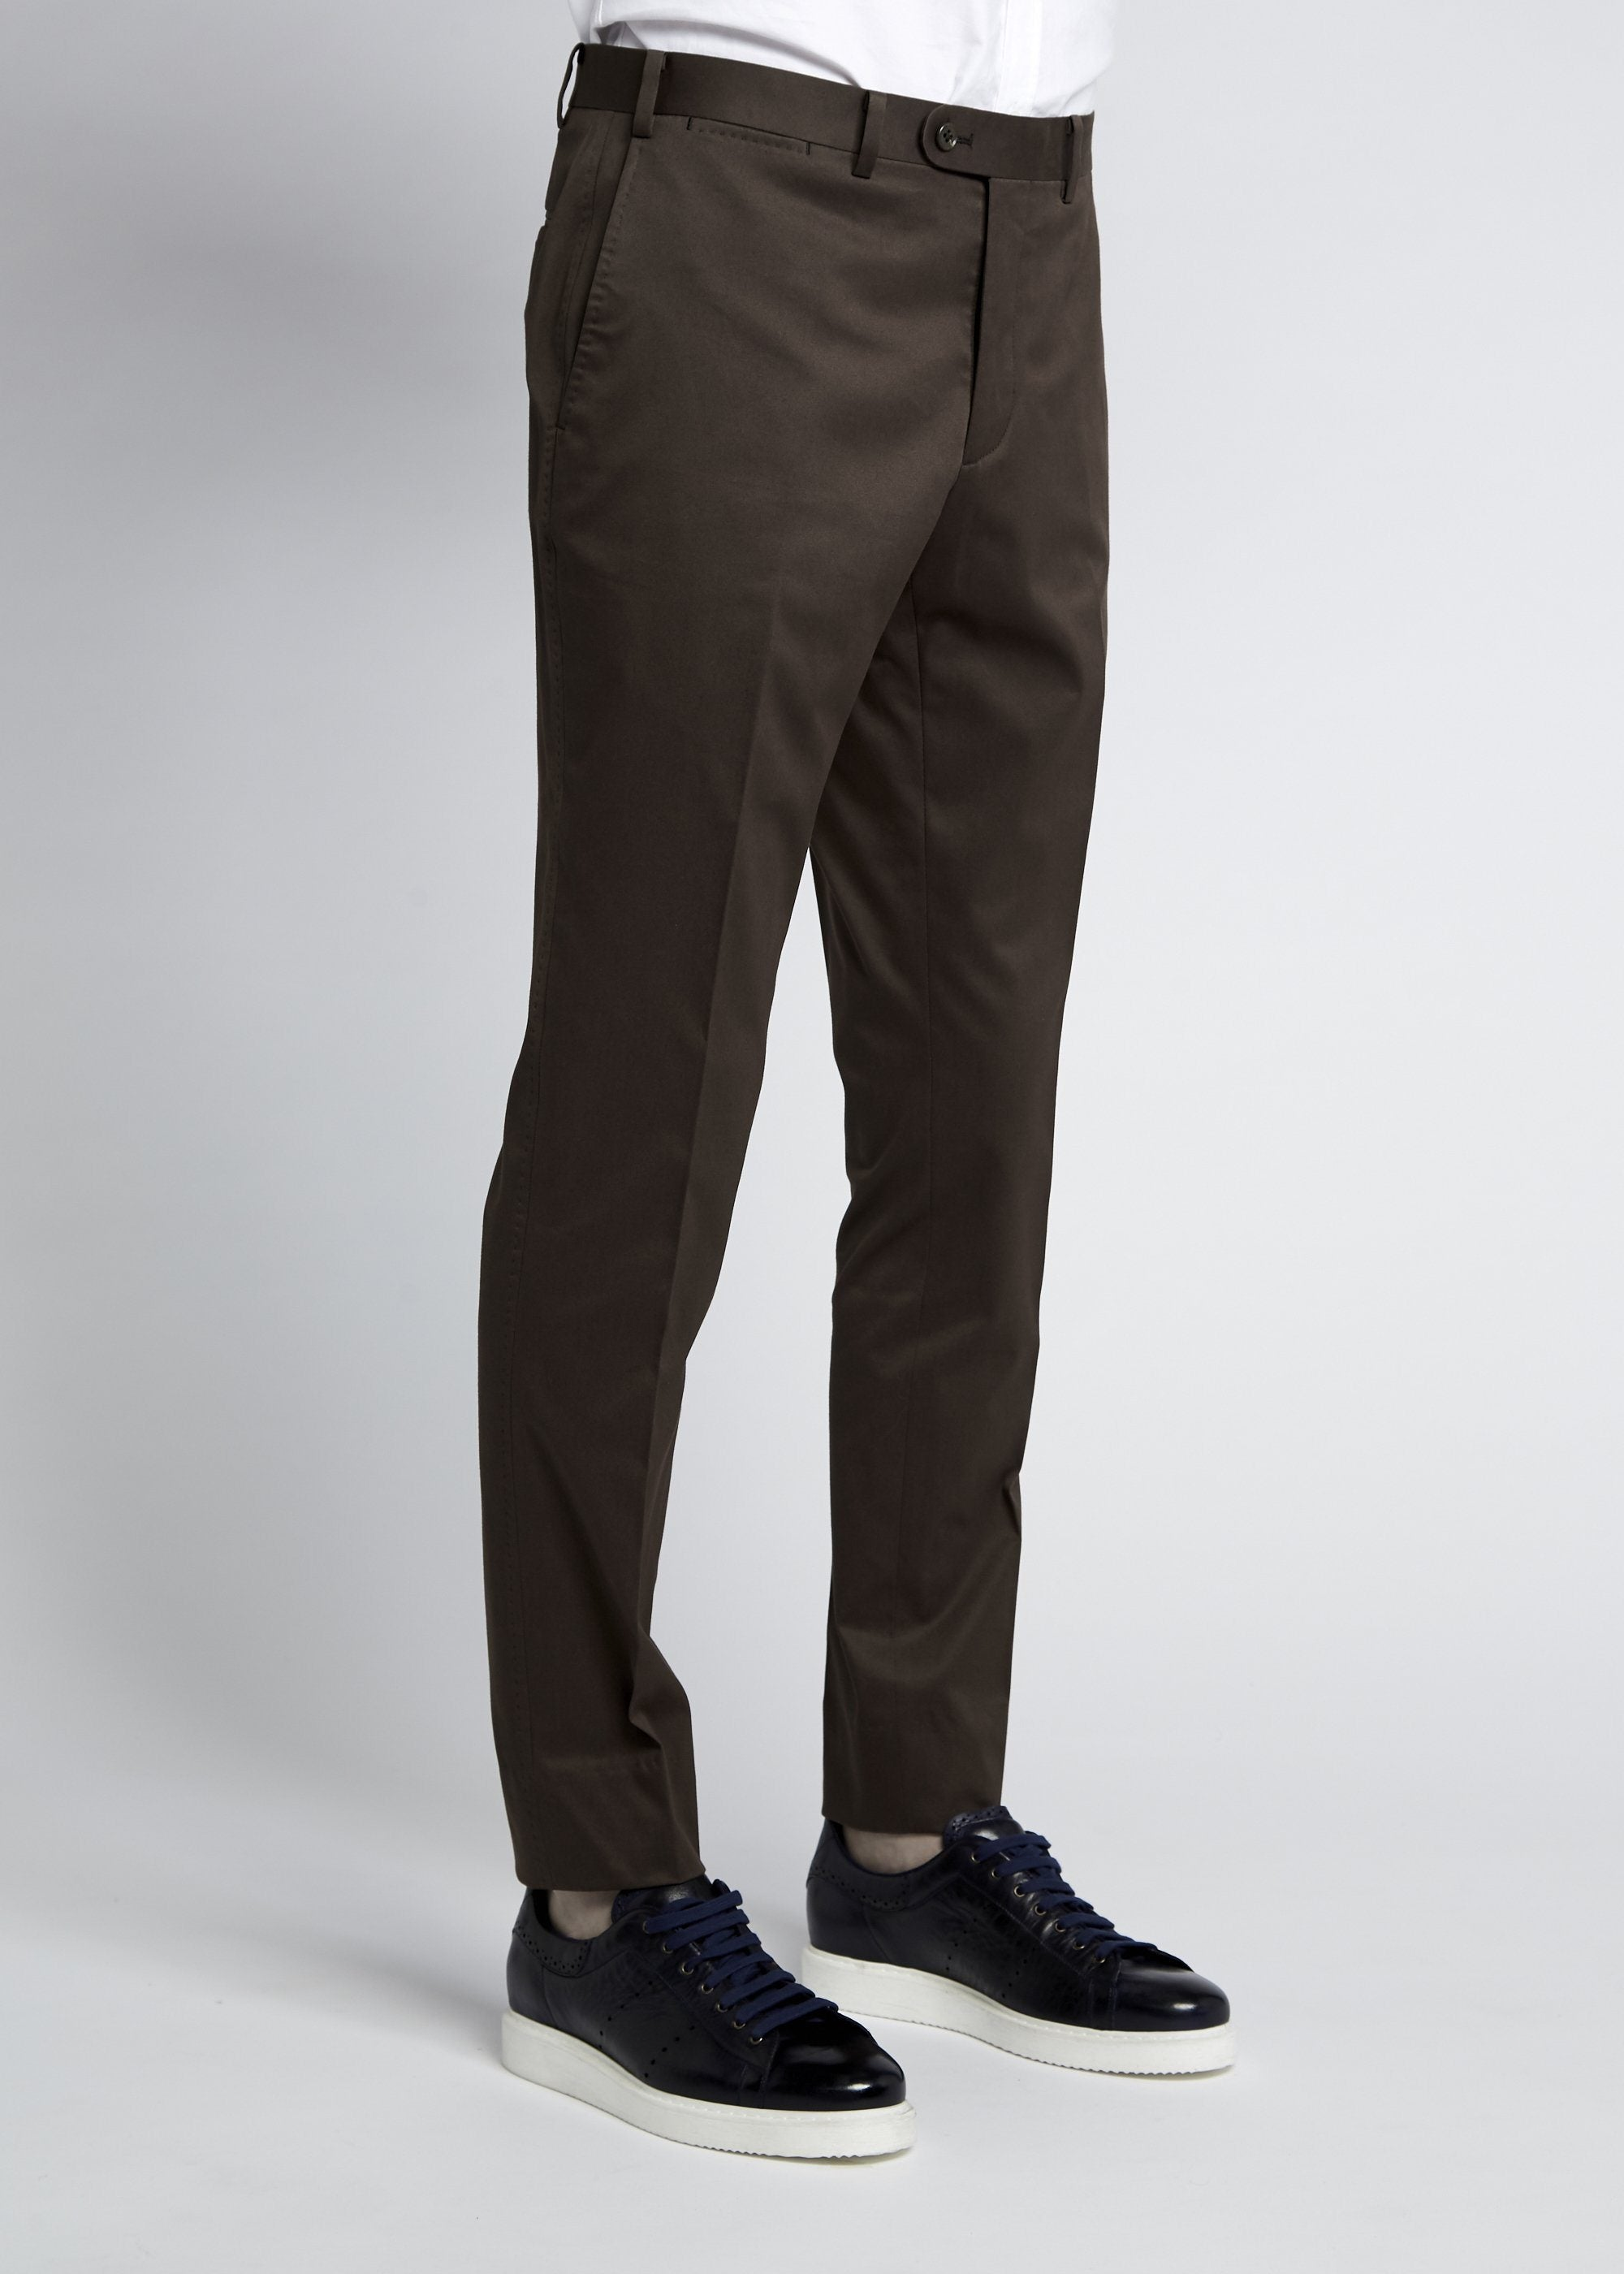 Xander Trouser - Brown